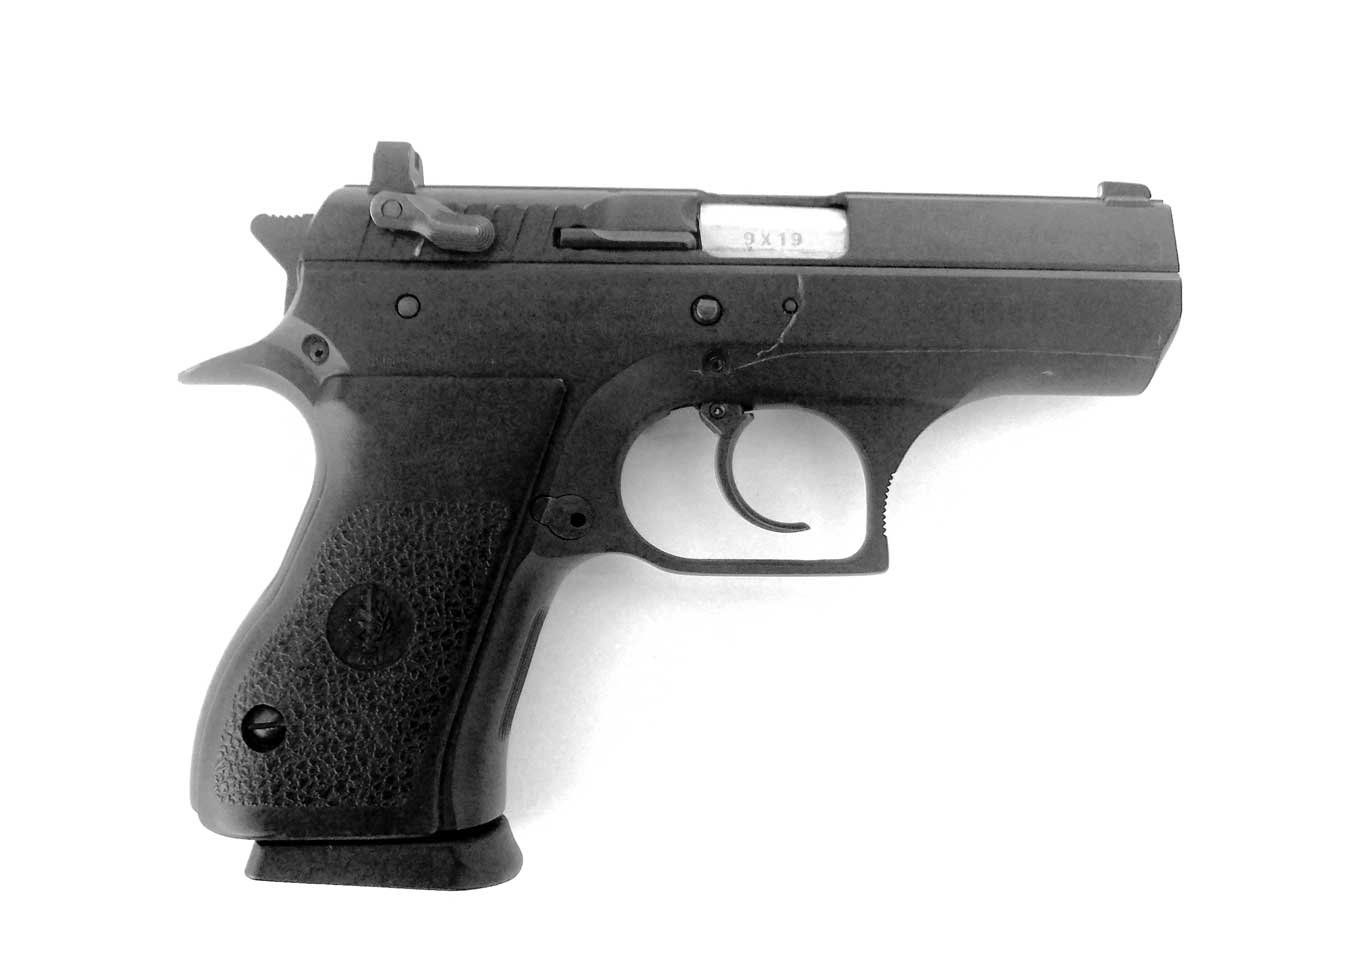 baby Desert Eagle 9mm pistol